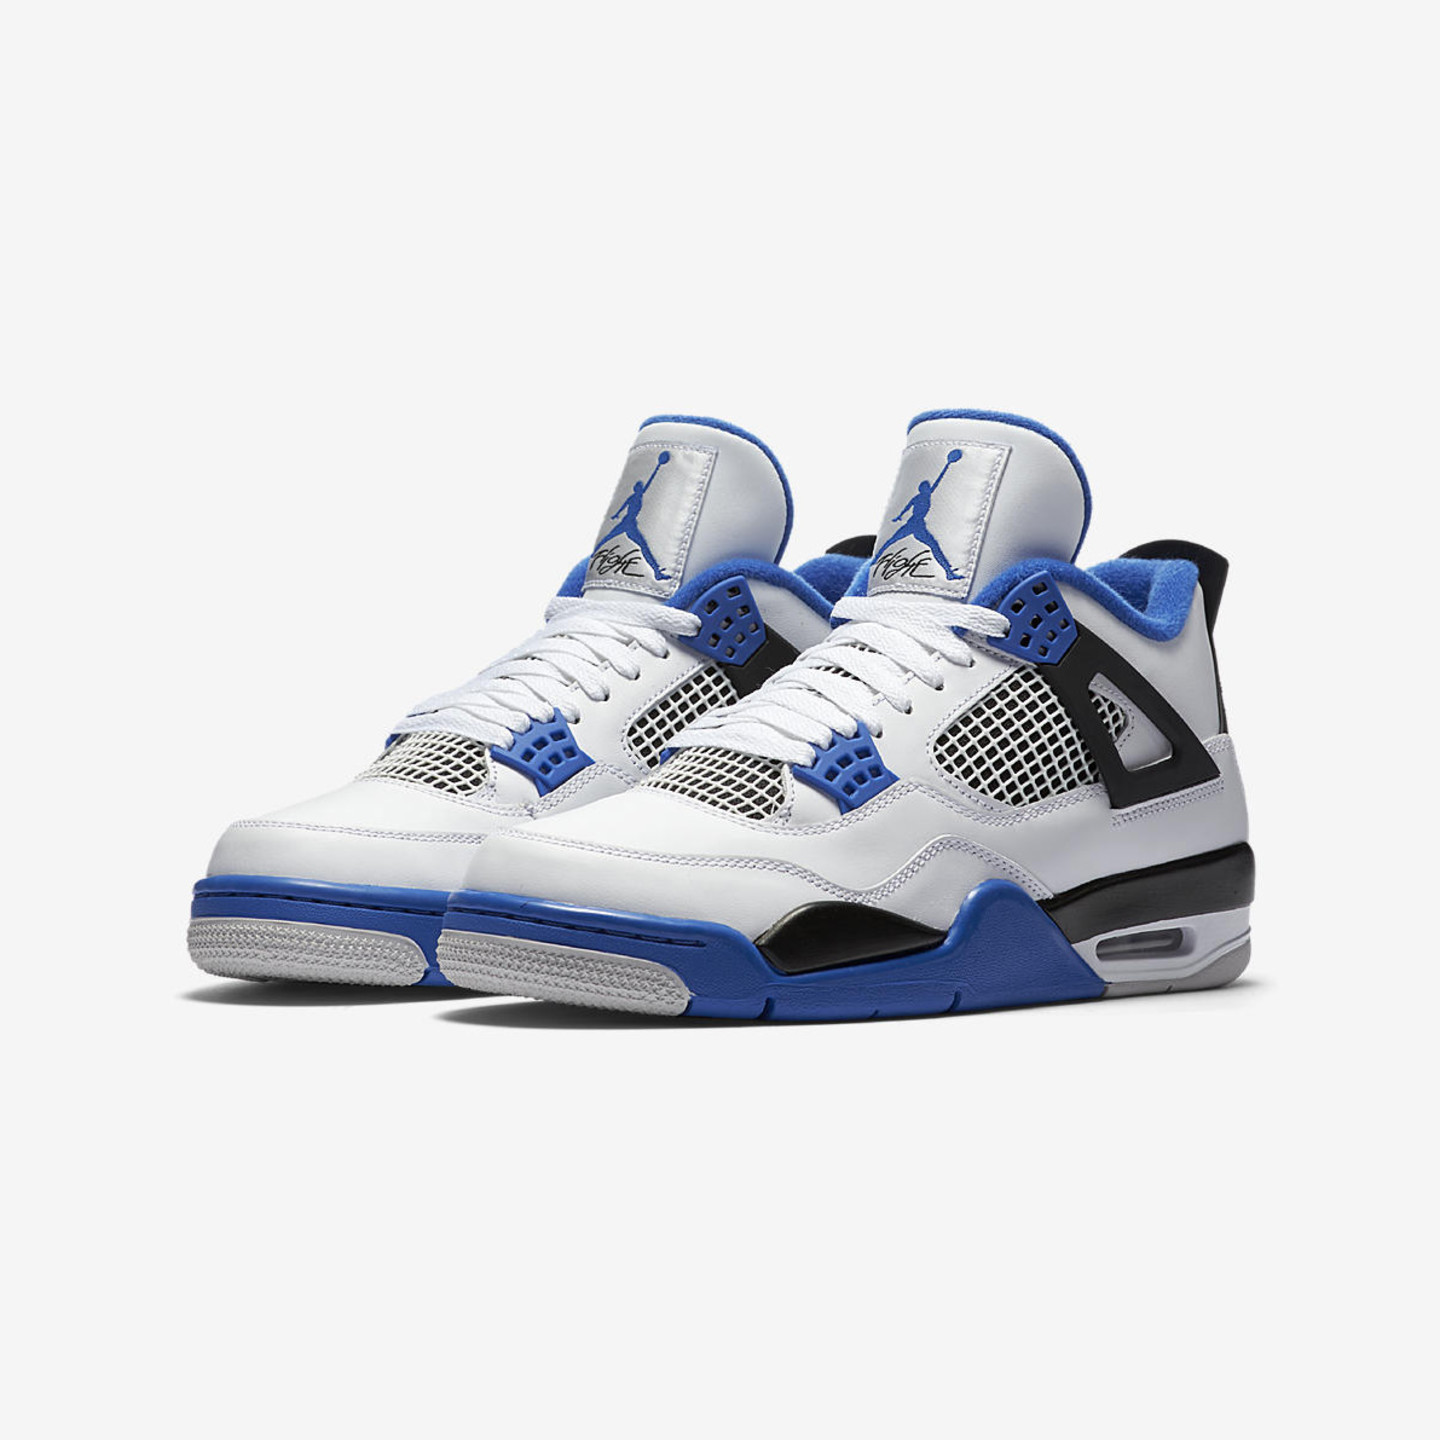 Jordan Air Jordan 4 Retro 'Motorsport' White / Game Royal / Black 308497 117